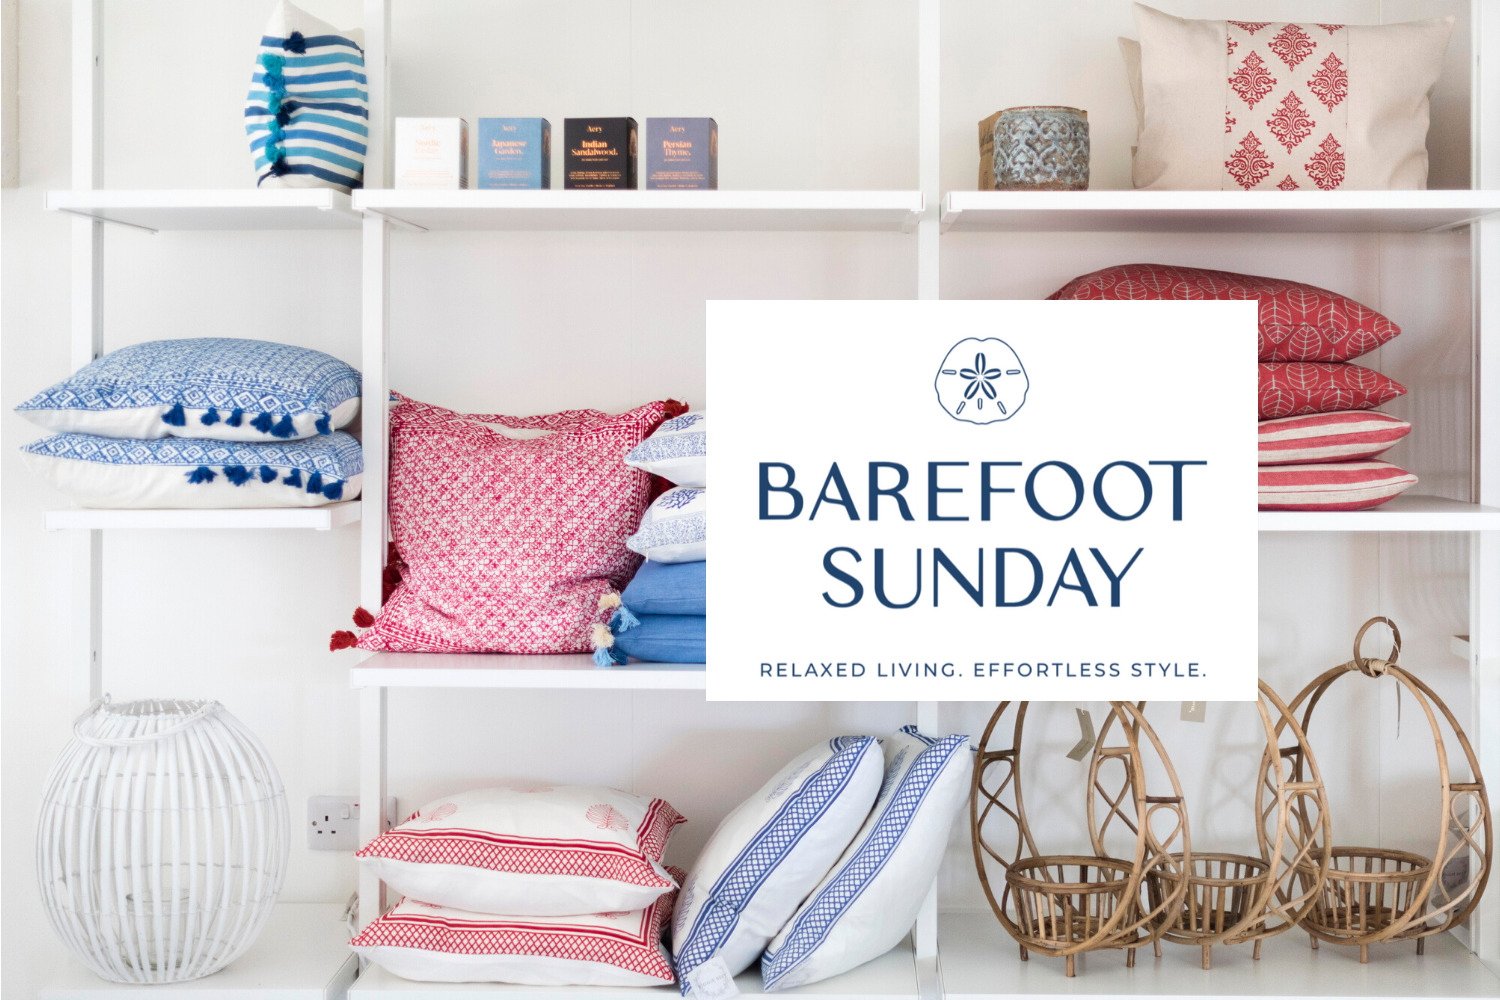 Barefoot Sunday retail shop